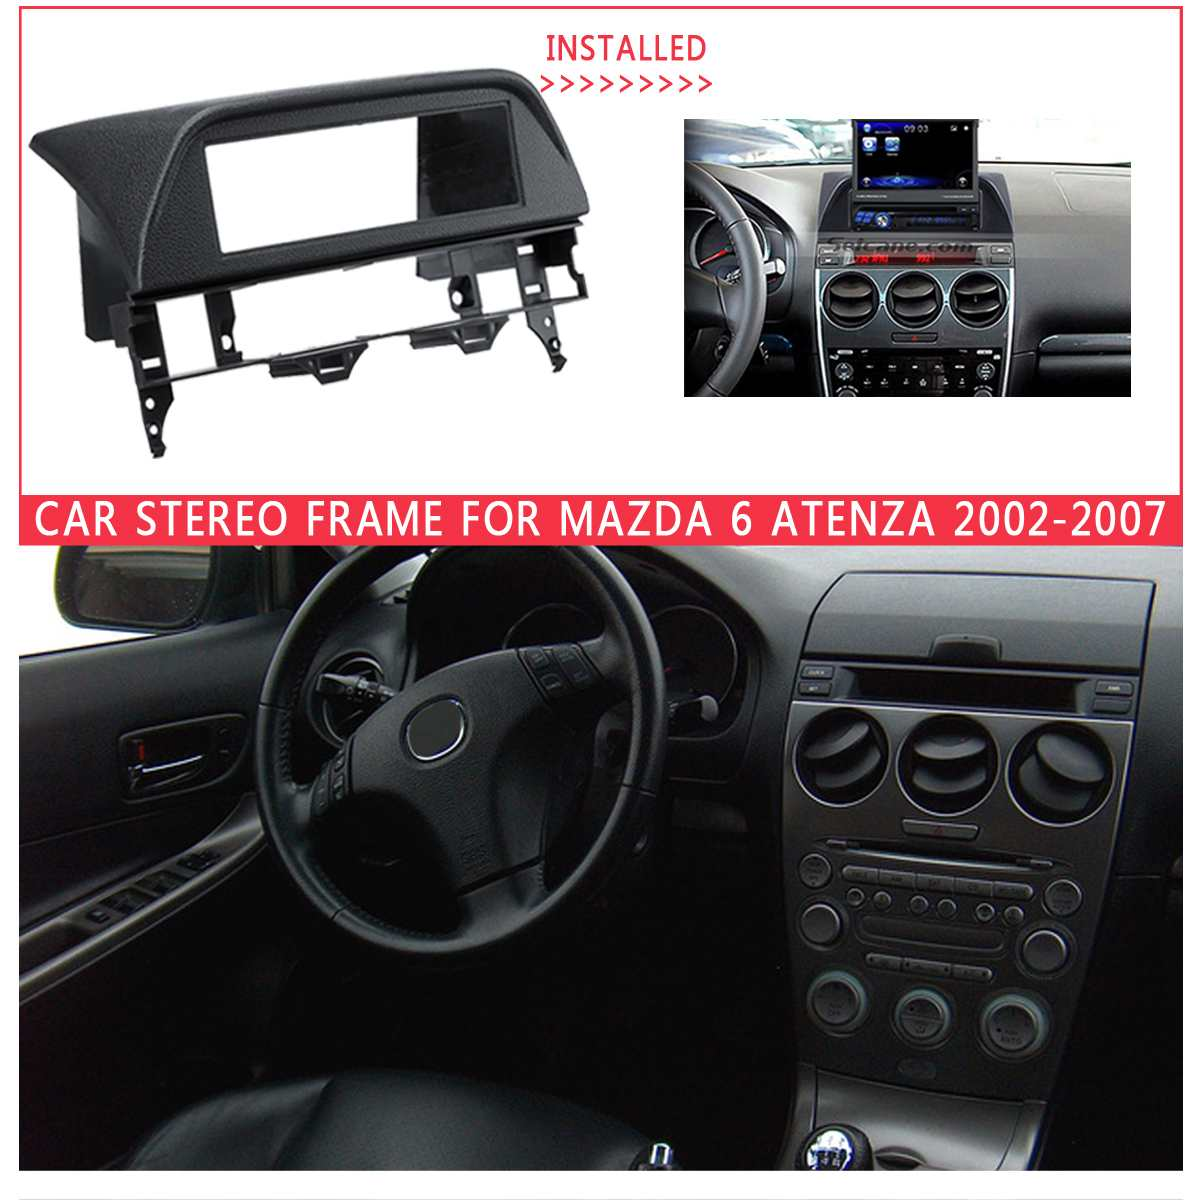 1 DIN Car Radio Fascia Mounted Kit for Mazda 6 Atenza 2002 2003 -2007 Stereo Dashboard Surrounded Panel Fitting Frame Grey Black image